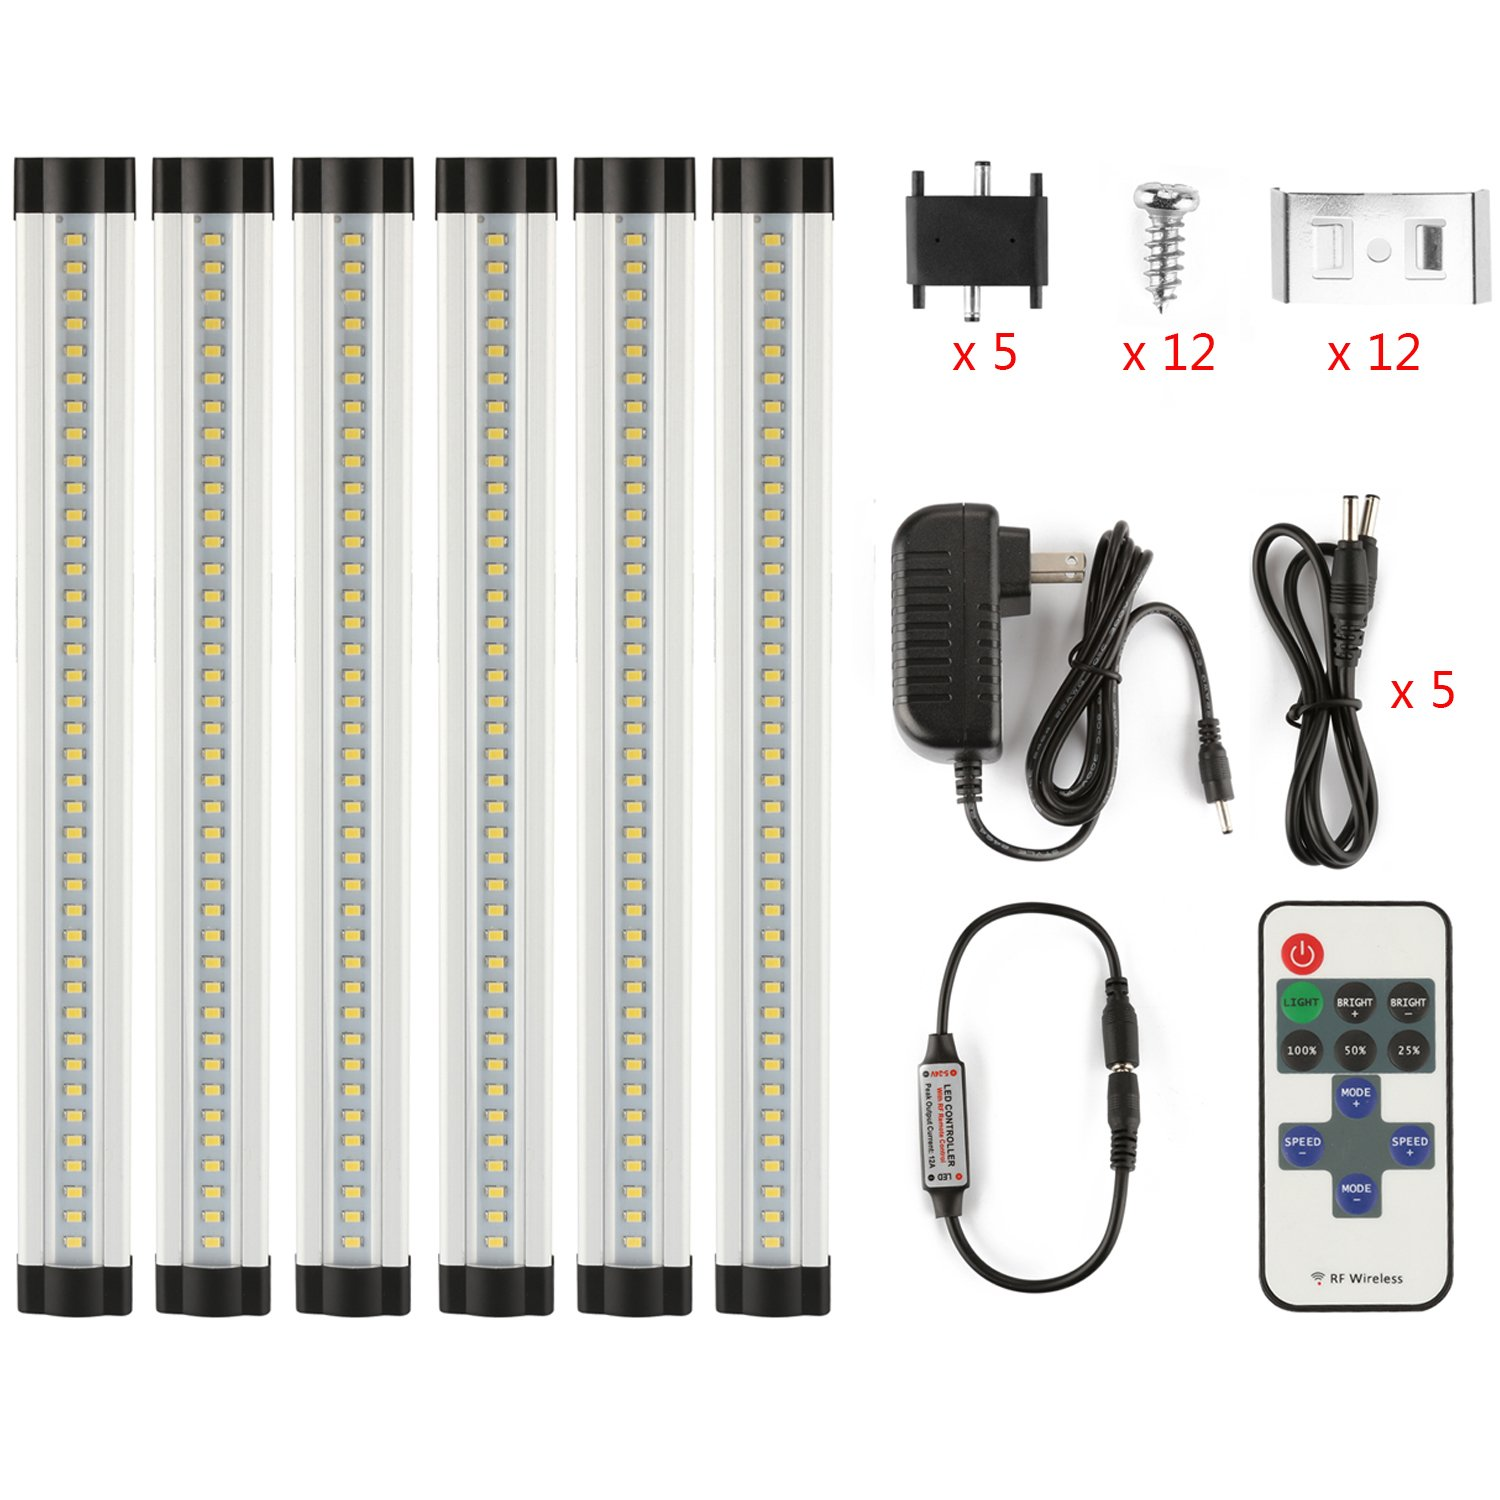 LXG-LED 12in Dimmable LED Under Cabinet Lighting, 18W 5000K Daylight 1600LM, Clear Cover Led Strips,11key Remote Control,6Pack